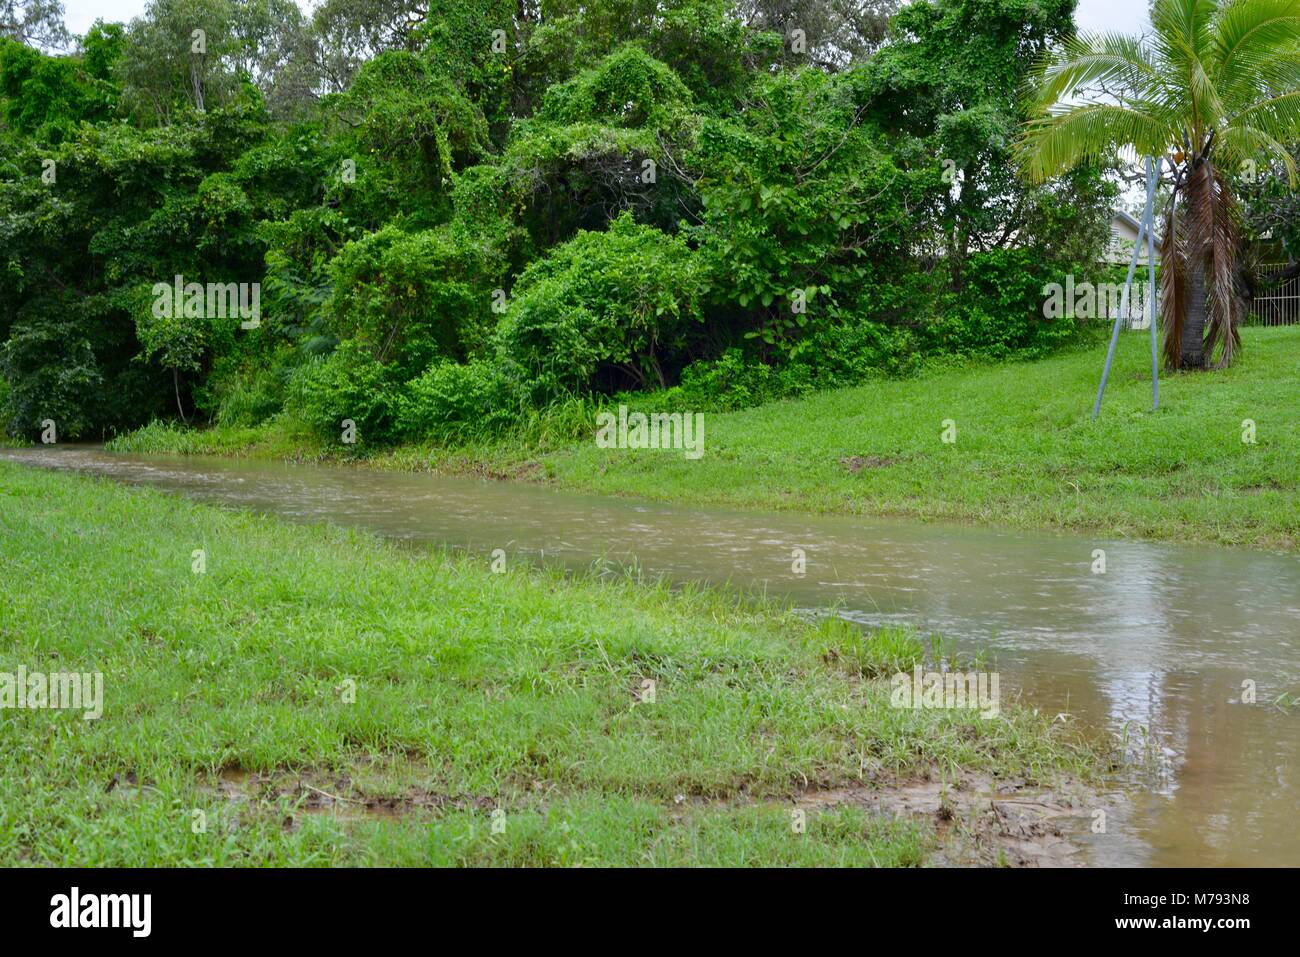 Flooding in Annandale townsville after storms and heavy rainfall, Townsville, Queensland, Australia - Stock Image